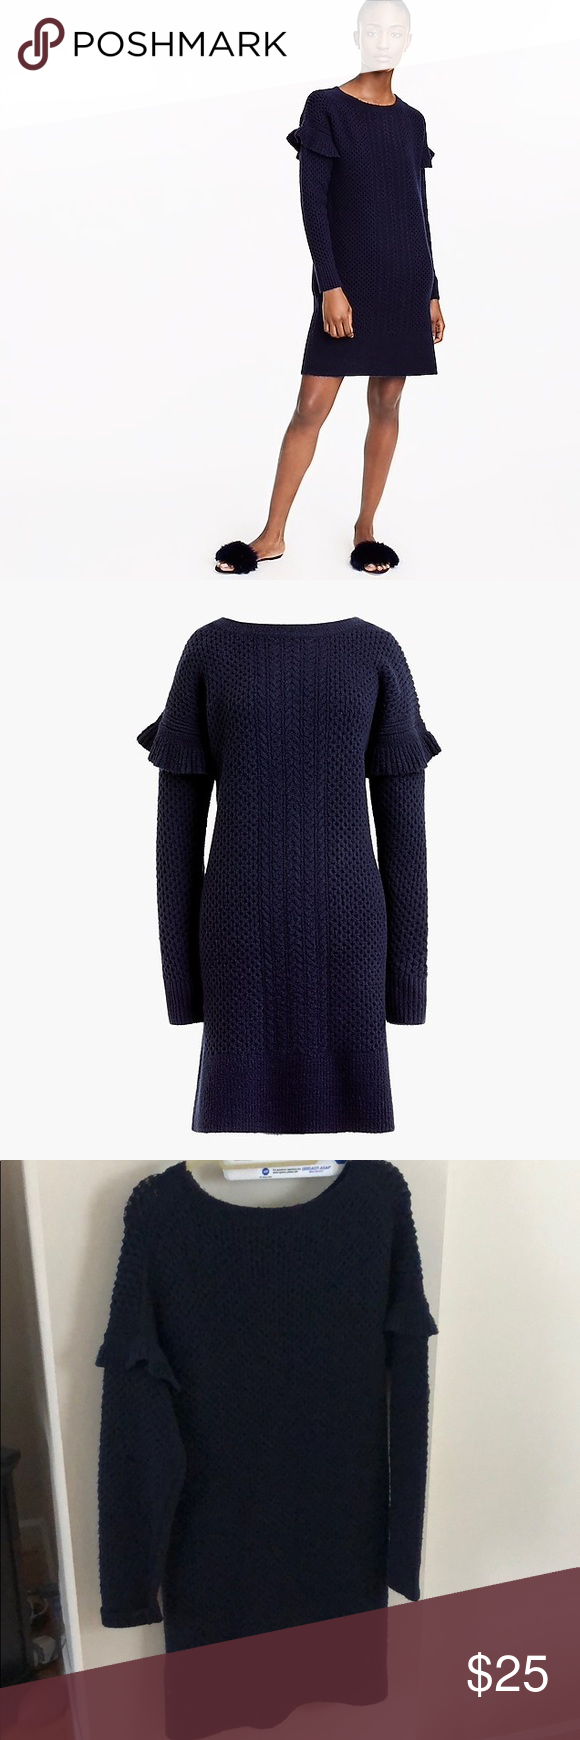 4d745af91eb 🔥J. Crew Ruffle Sleeve Sweater Dress NWT Dark navy cable knit ...